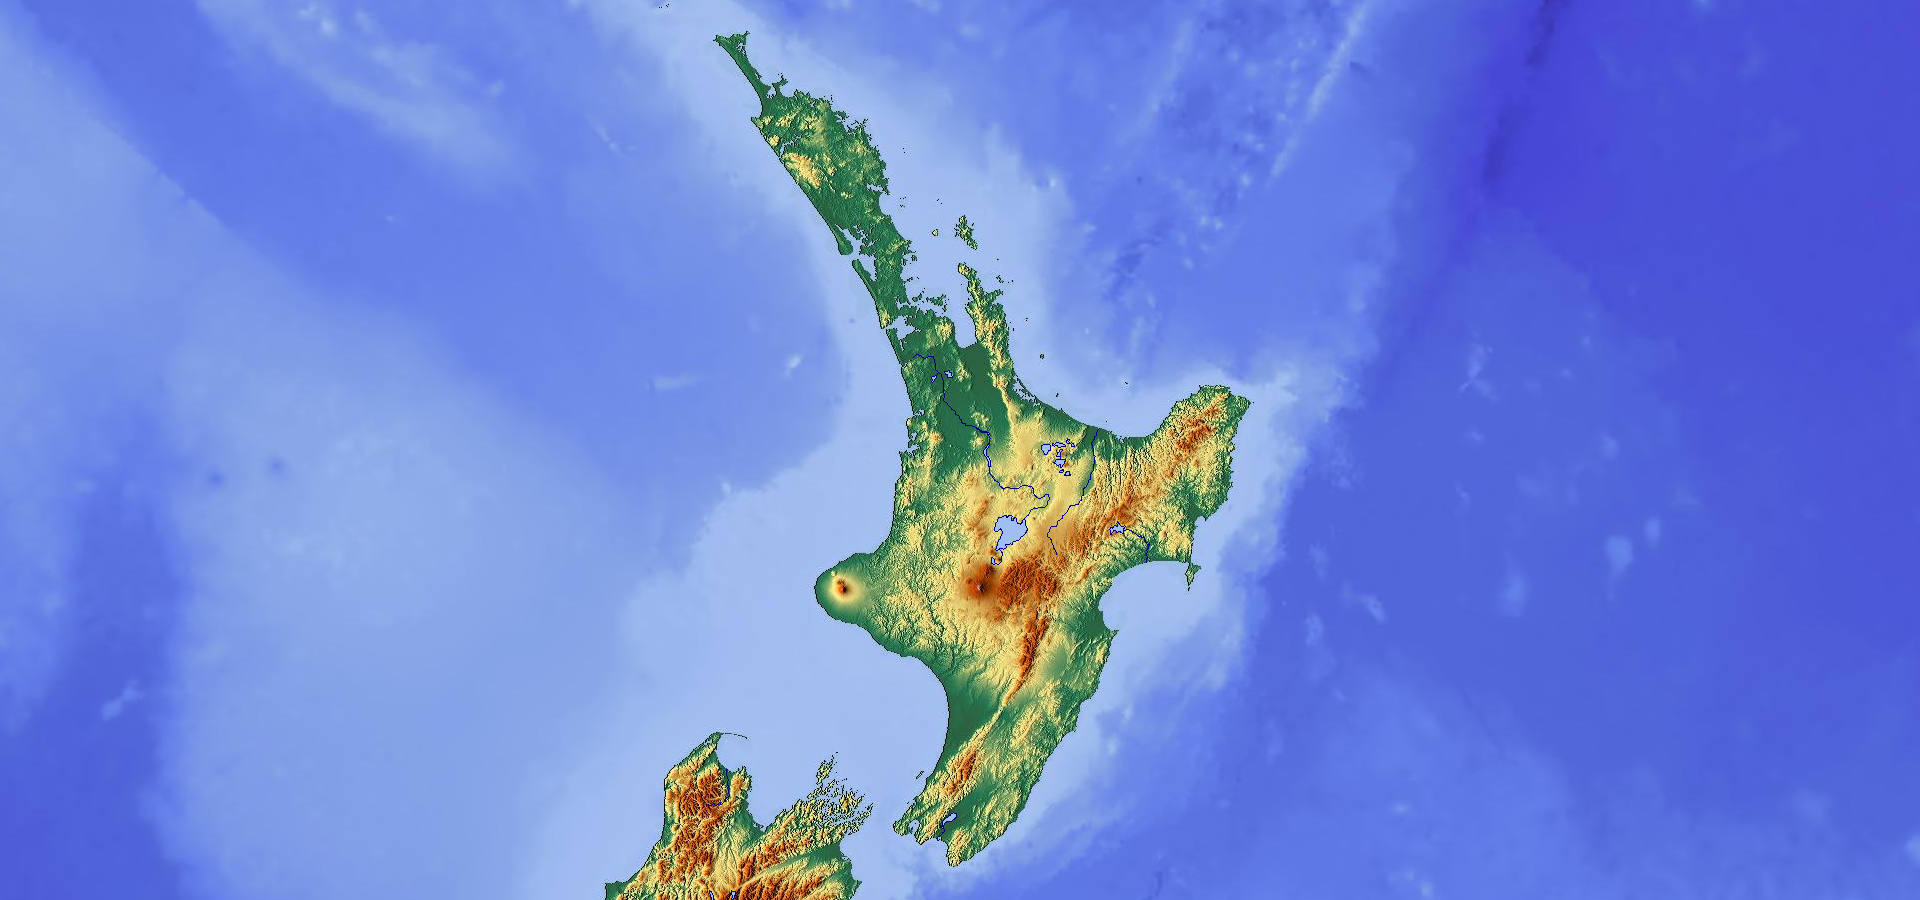 Topographic Map Of New Zealand.Topographic Map Of North Island New Zealand Maps Australia Map